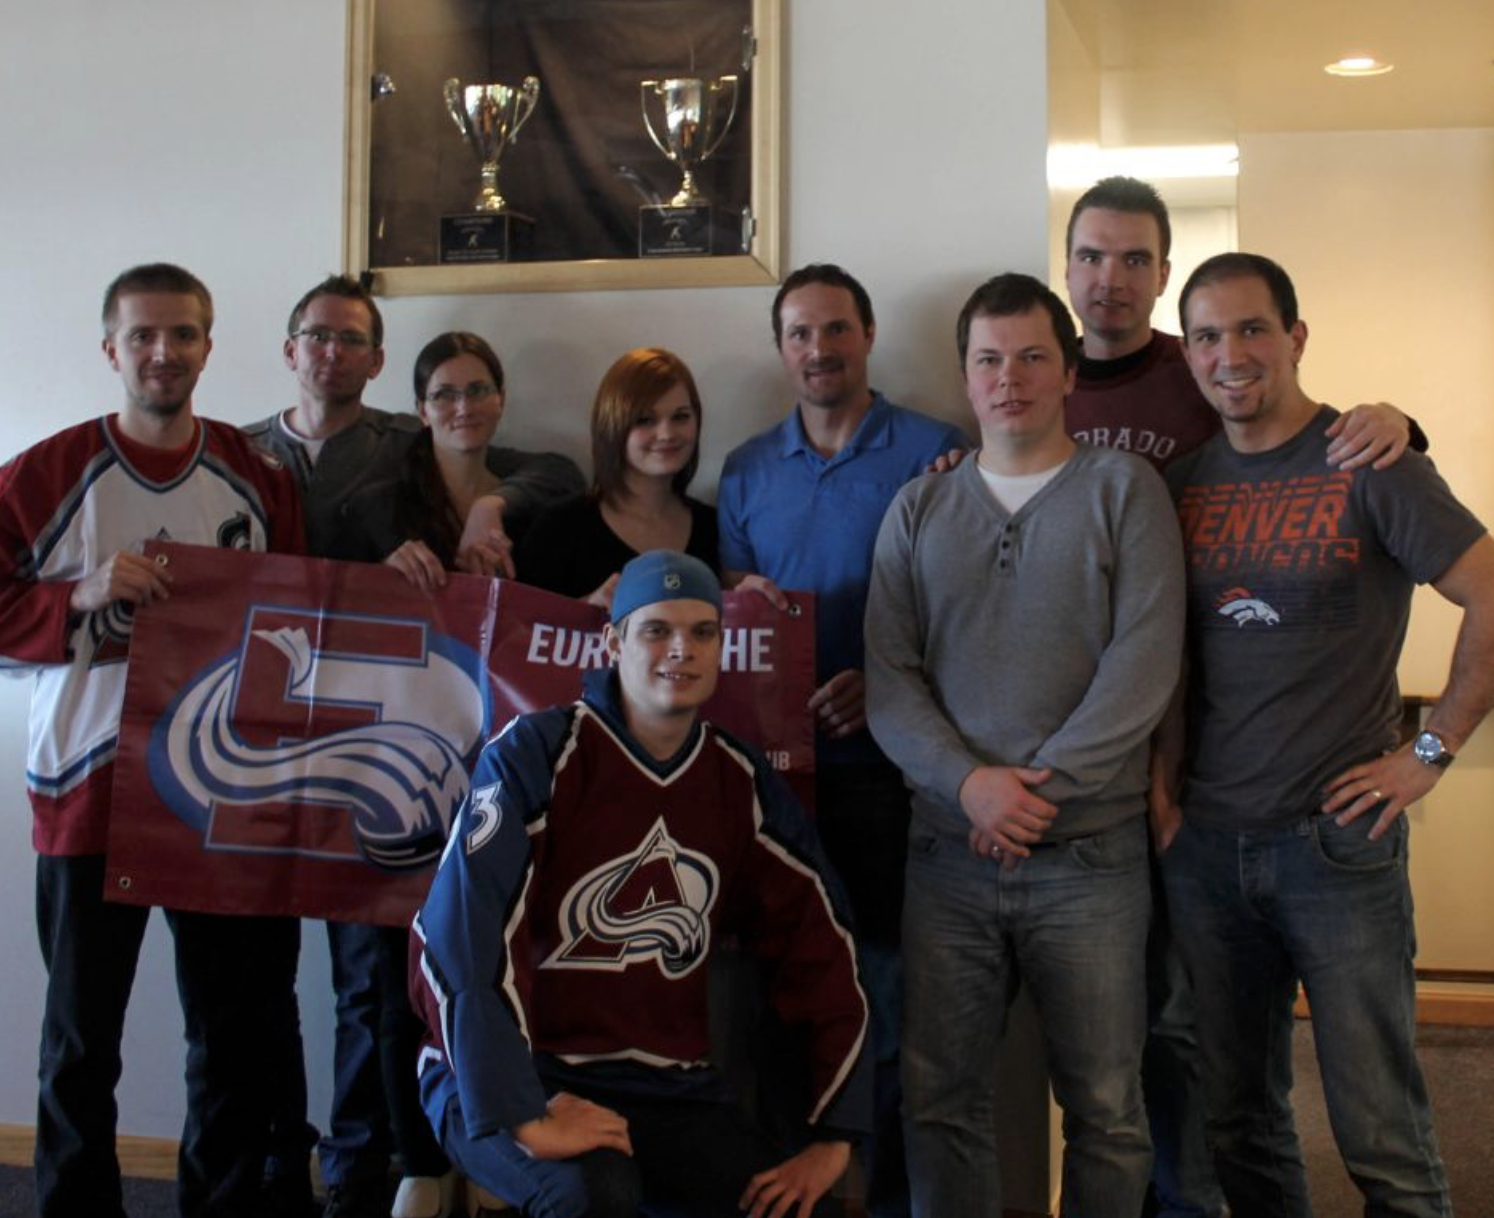 Meeting with Milan Hejduk